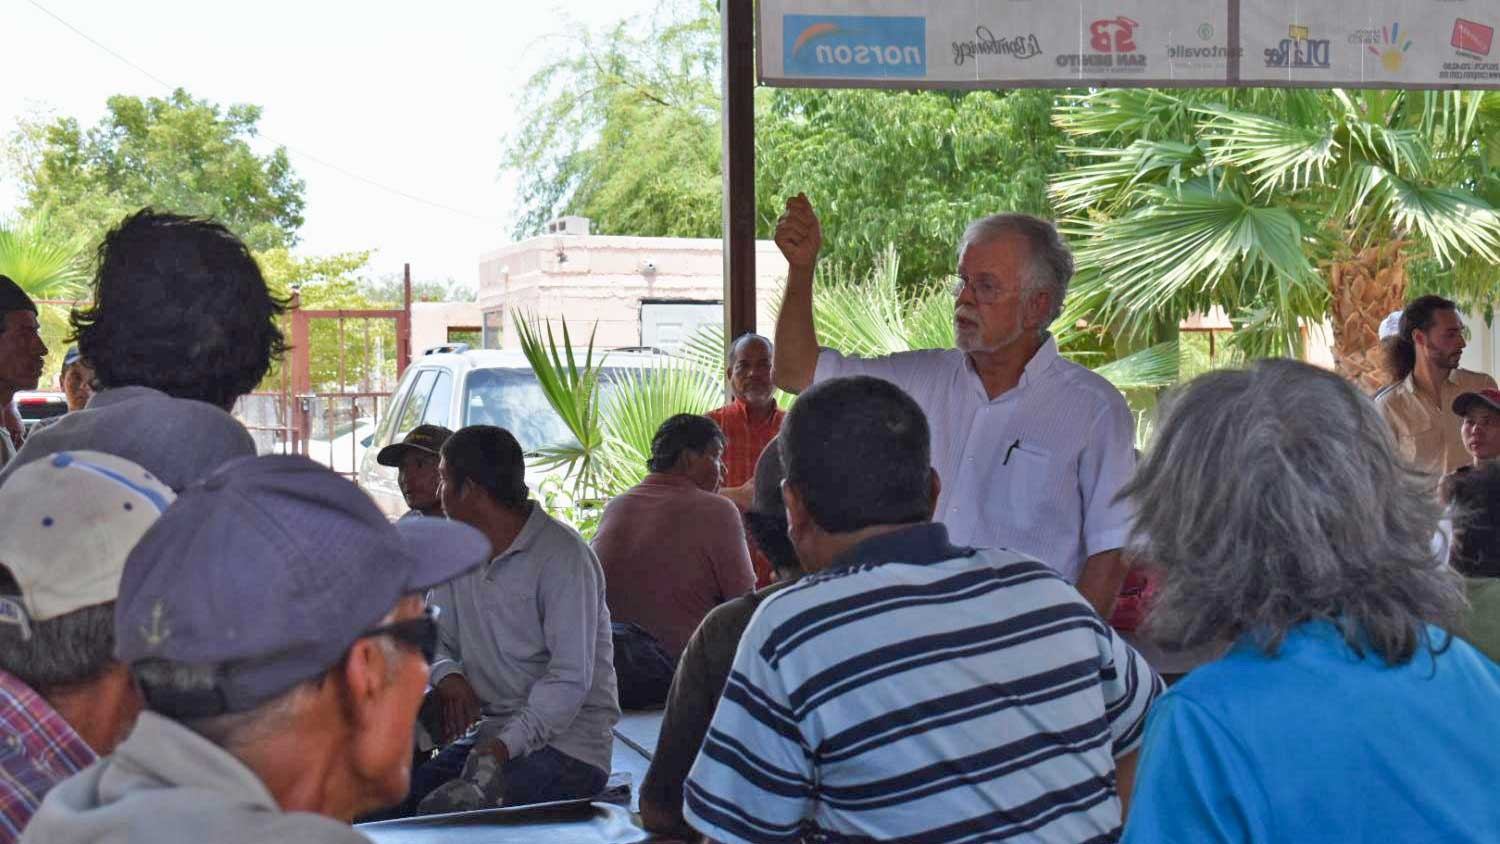 Rev. Robin Hoover speaks to migrants at a soup kitchen in Hermosillo, Sonora, on July 8, 2019.